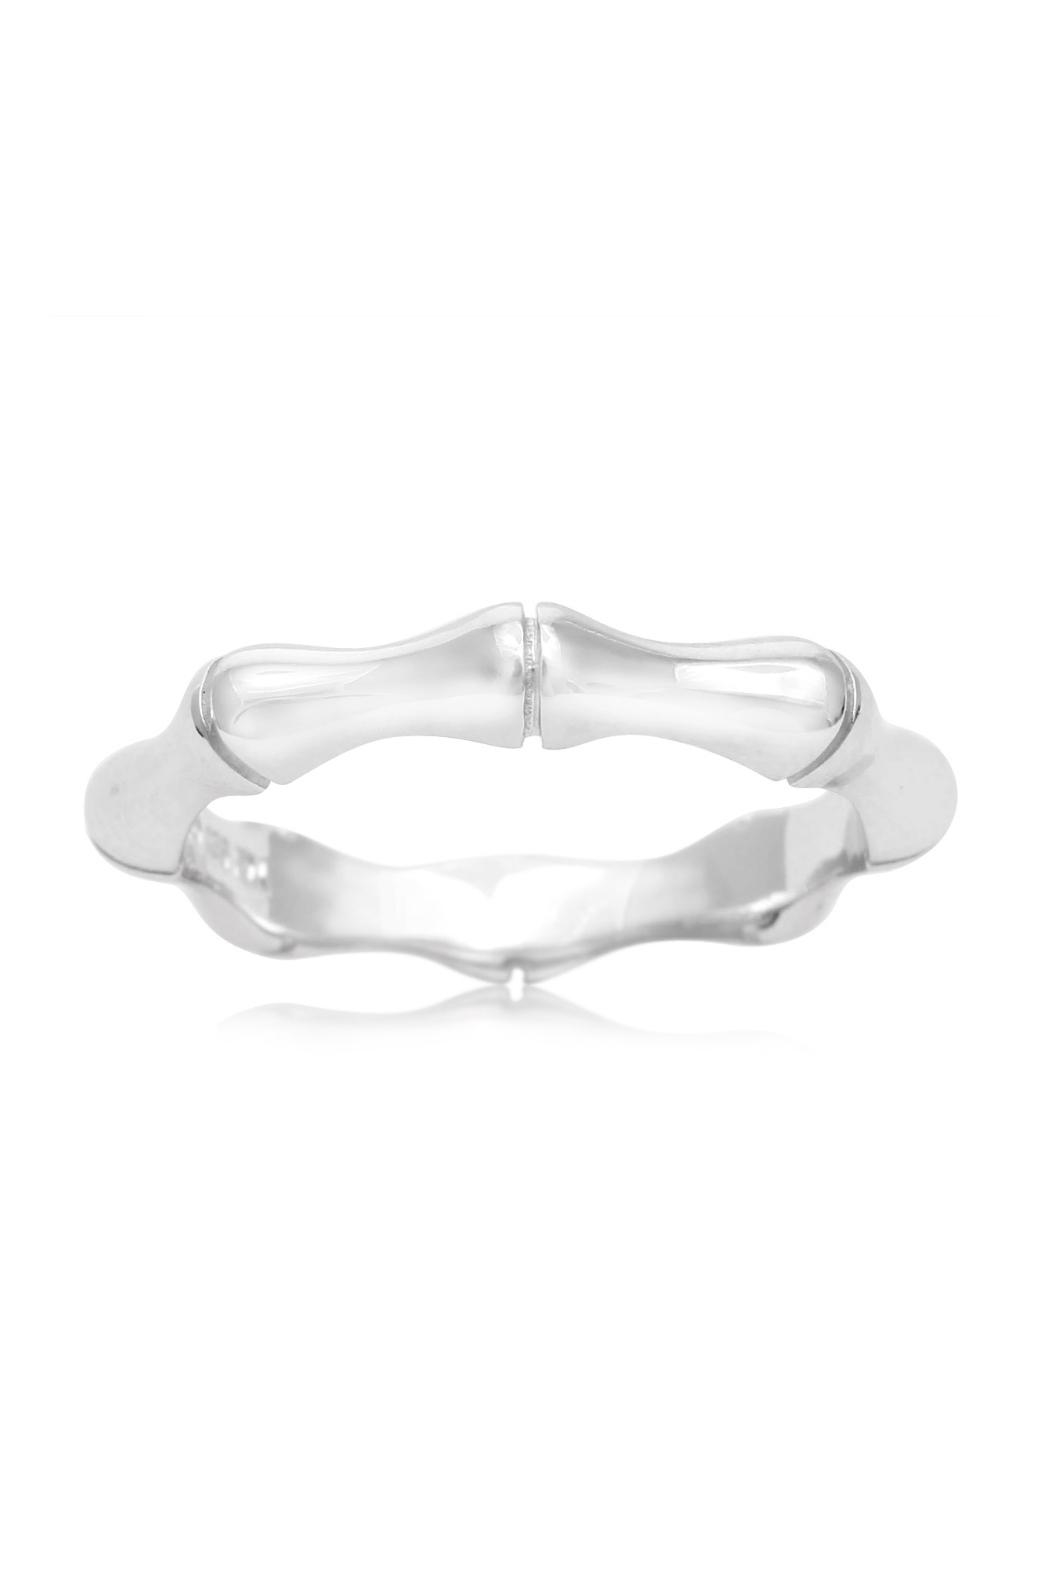 6th Borough Boutique Sterling Bamboo Ring - Main Image